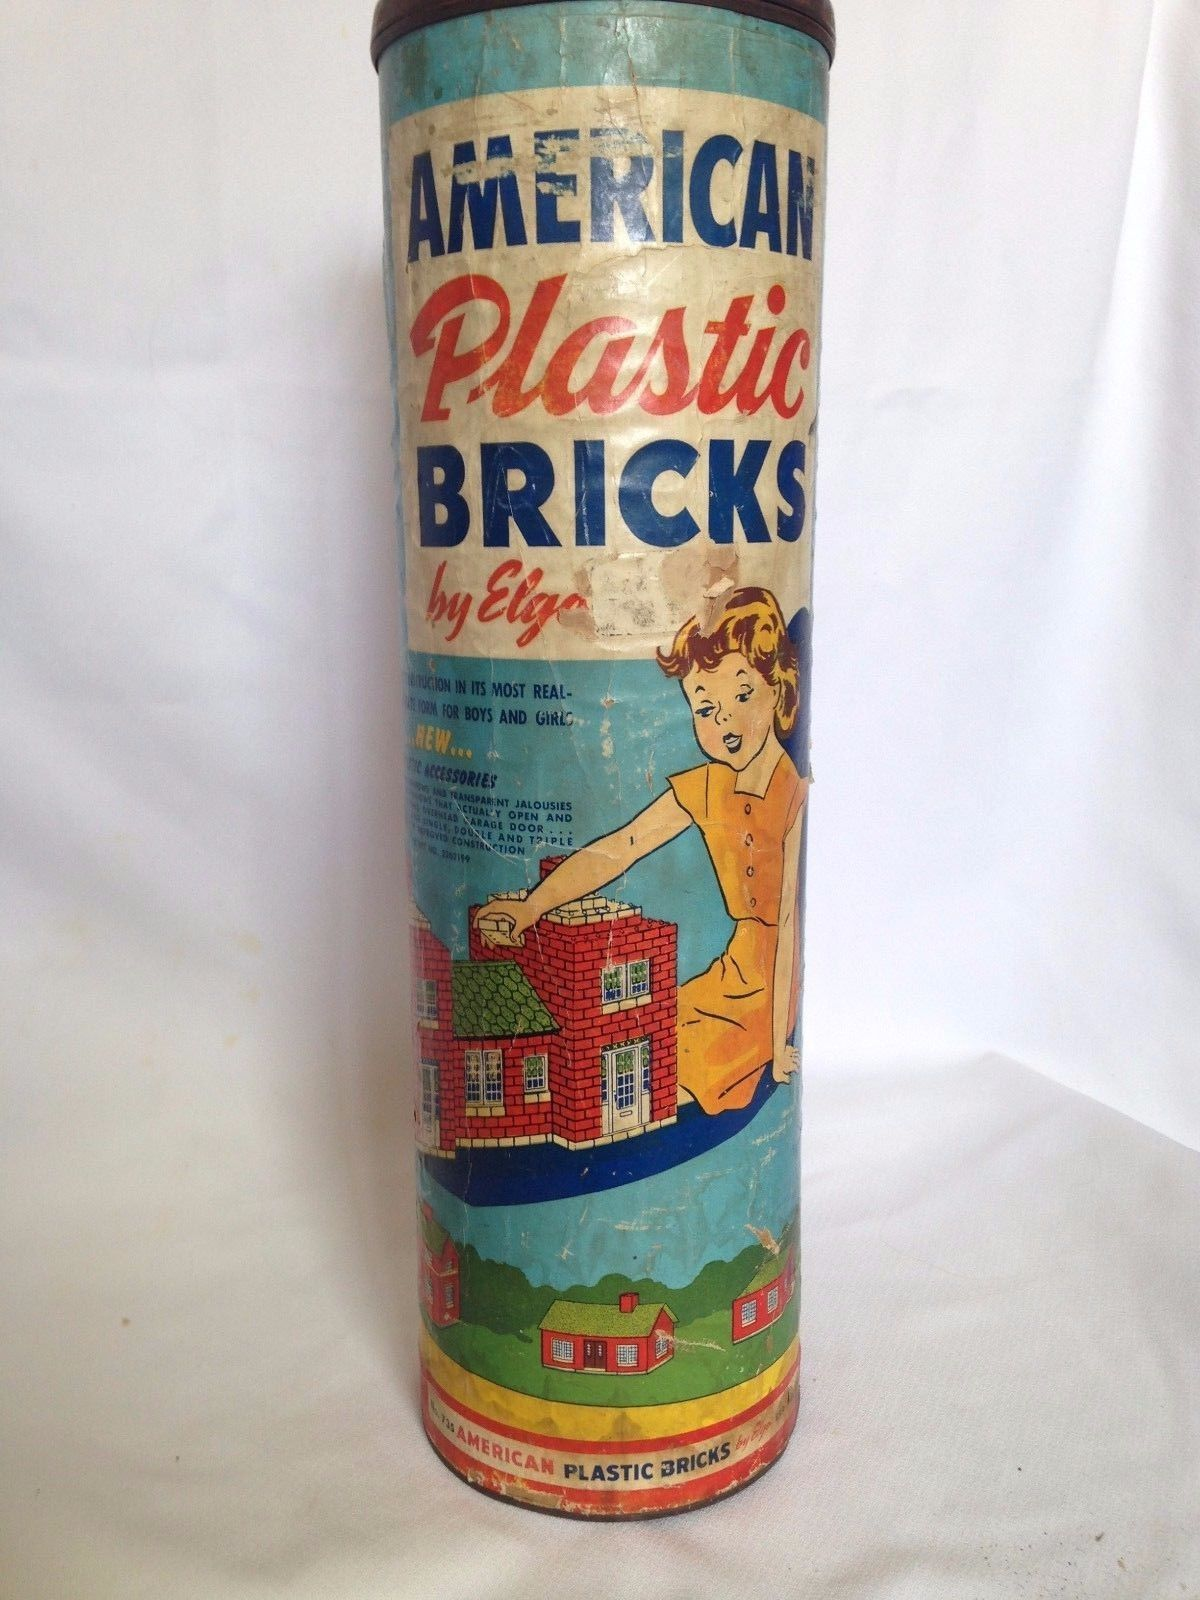 American Plastic Bricks by Elgo Original Container and Building Instructions